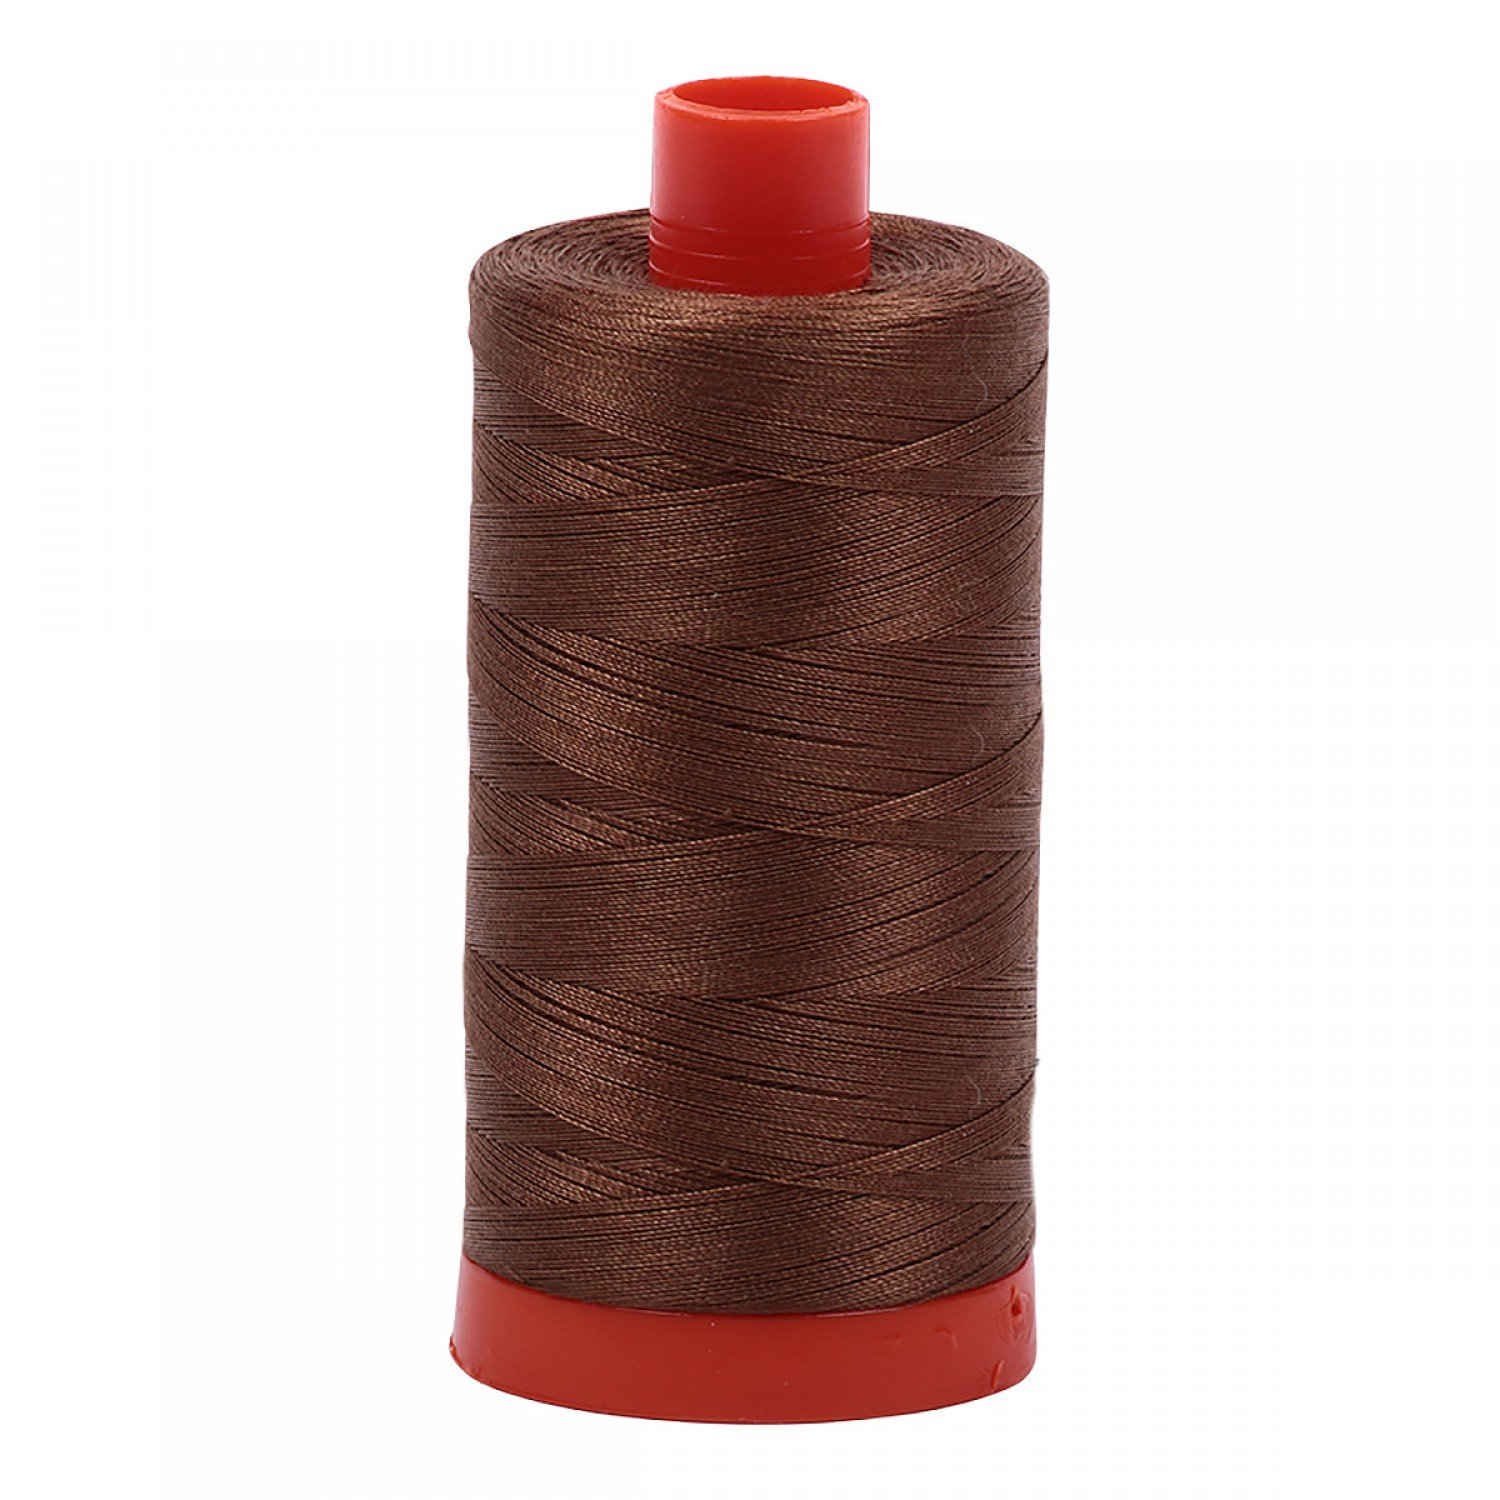 Aurifil Mako Cotton Thread Solid 50wt 1422yds 2372 Dark Antique Gold